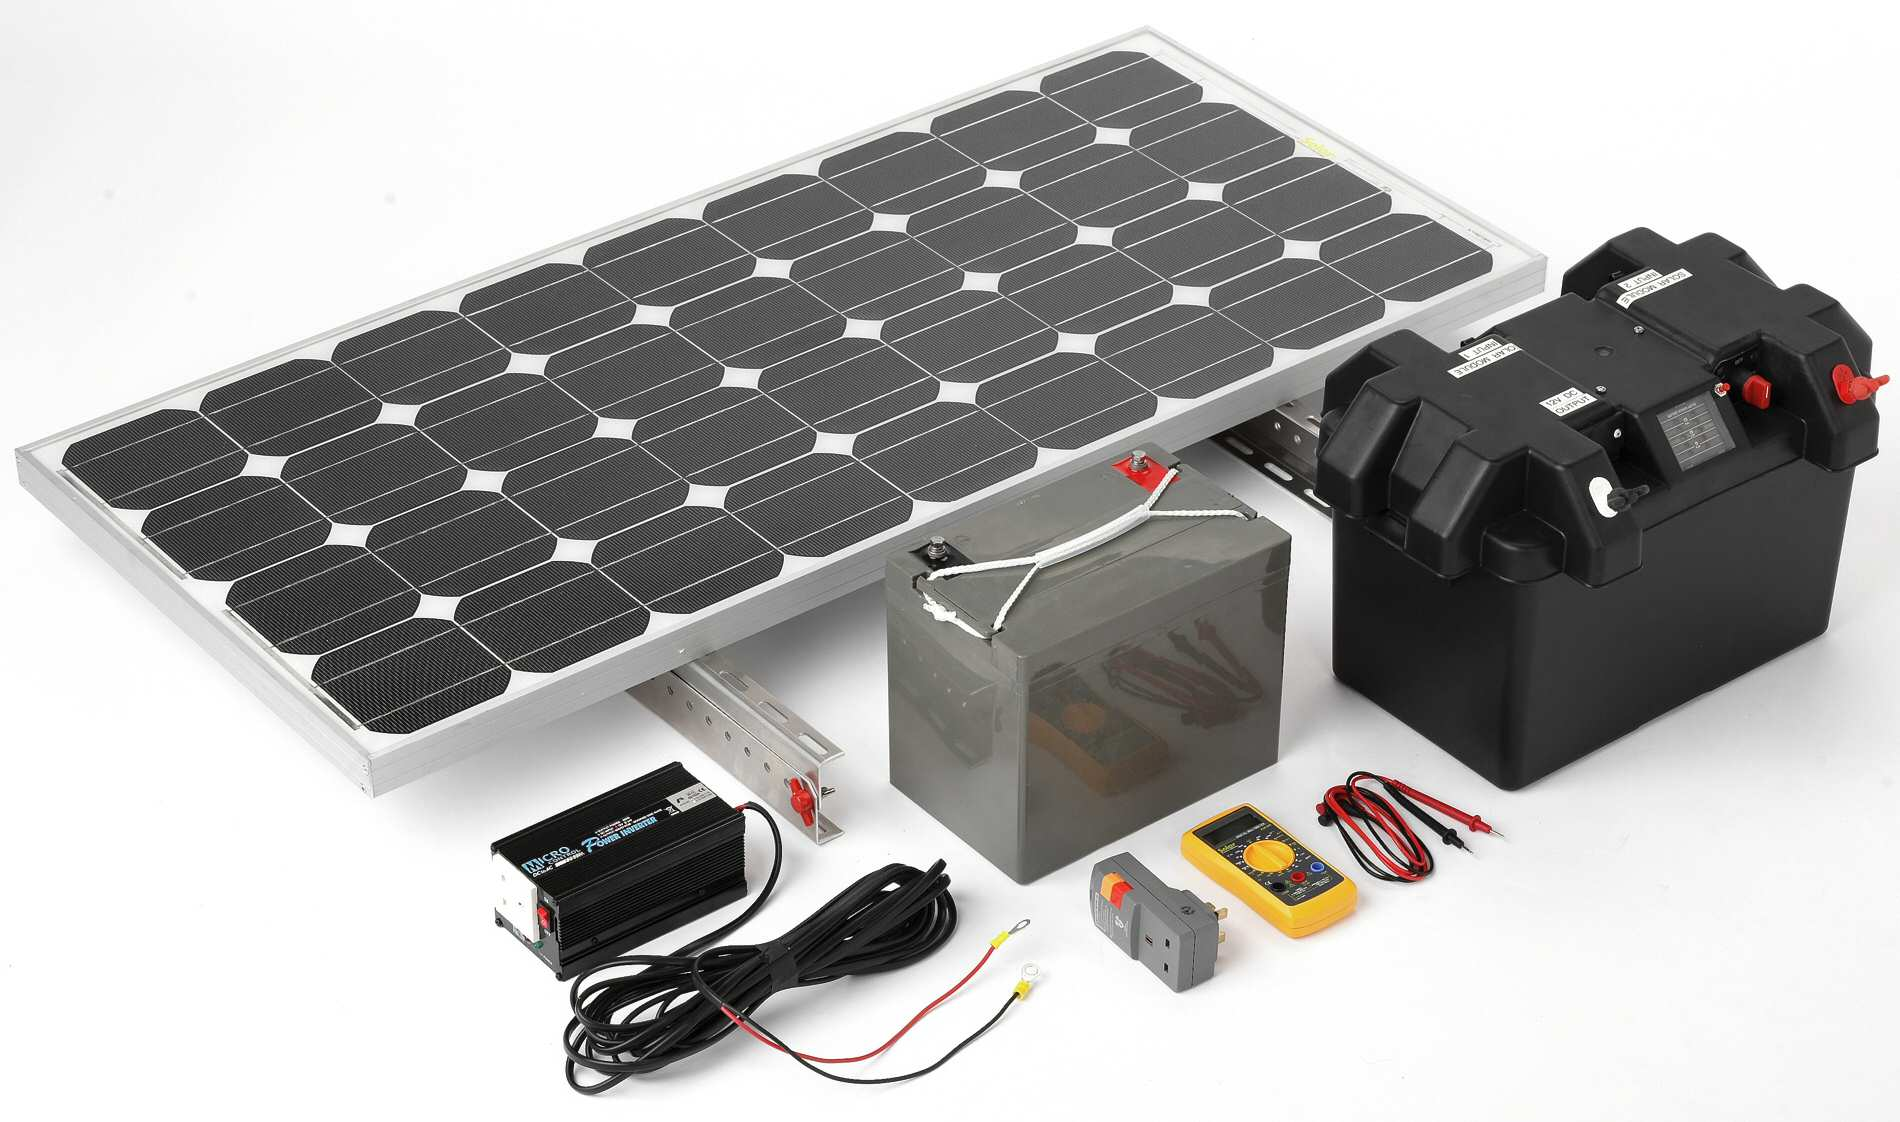 SOLAR-HOME-POWER-STATION-lg.jpg